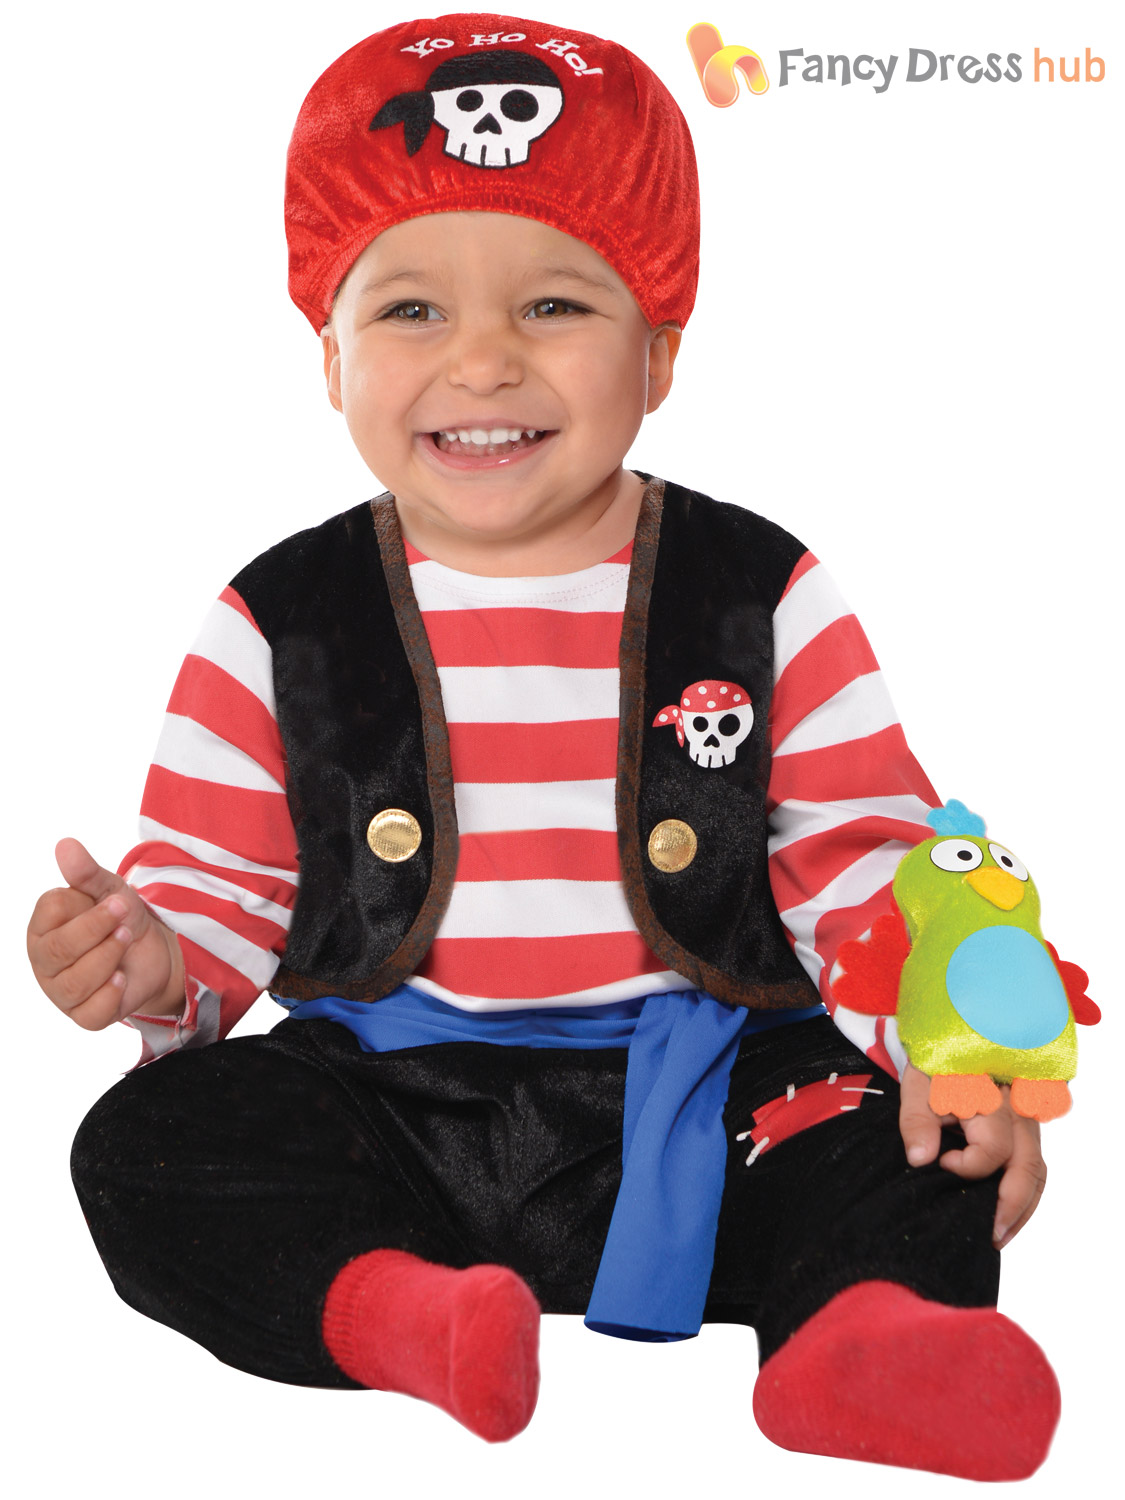 Children's Pirate Fancy Dress. We all love to play the baddie once in a while, and what's a more lovable rogue than a pirate! From baby buccaneers to swashbuckling Caribbean pirates, we have pirate fancy dress for all ages starting from under £10!